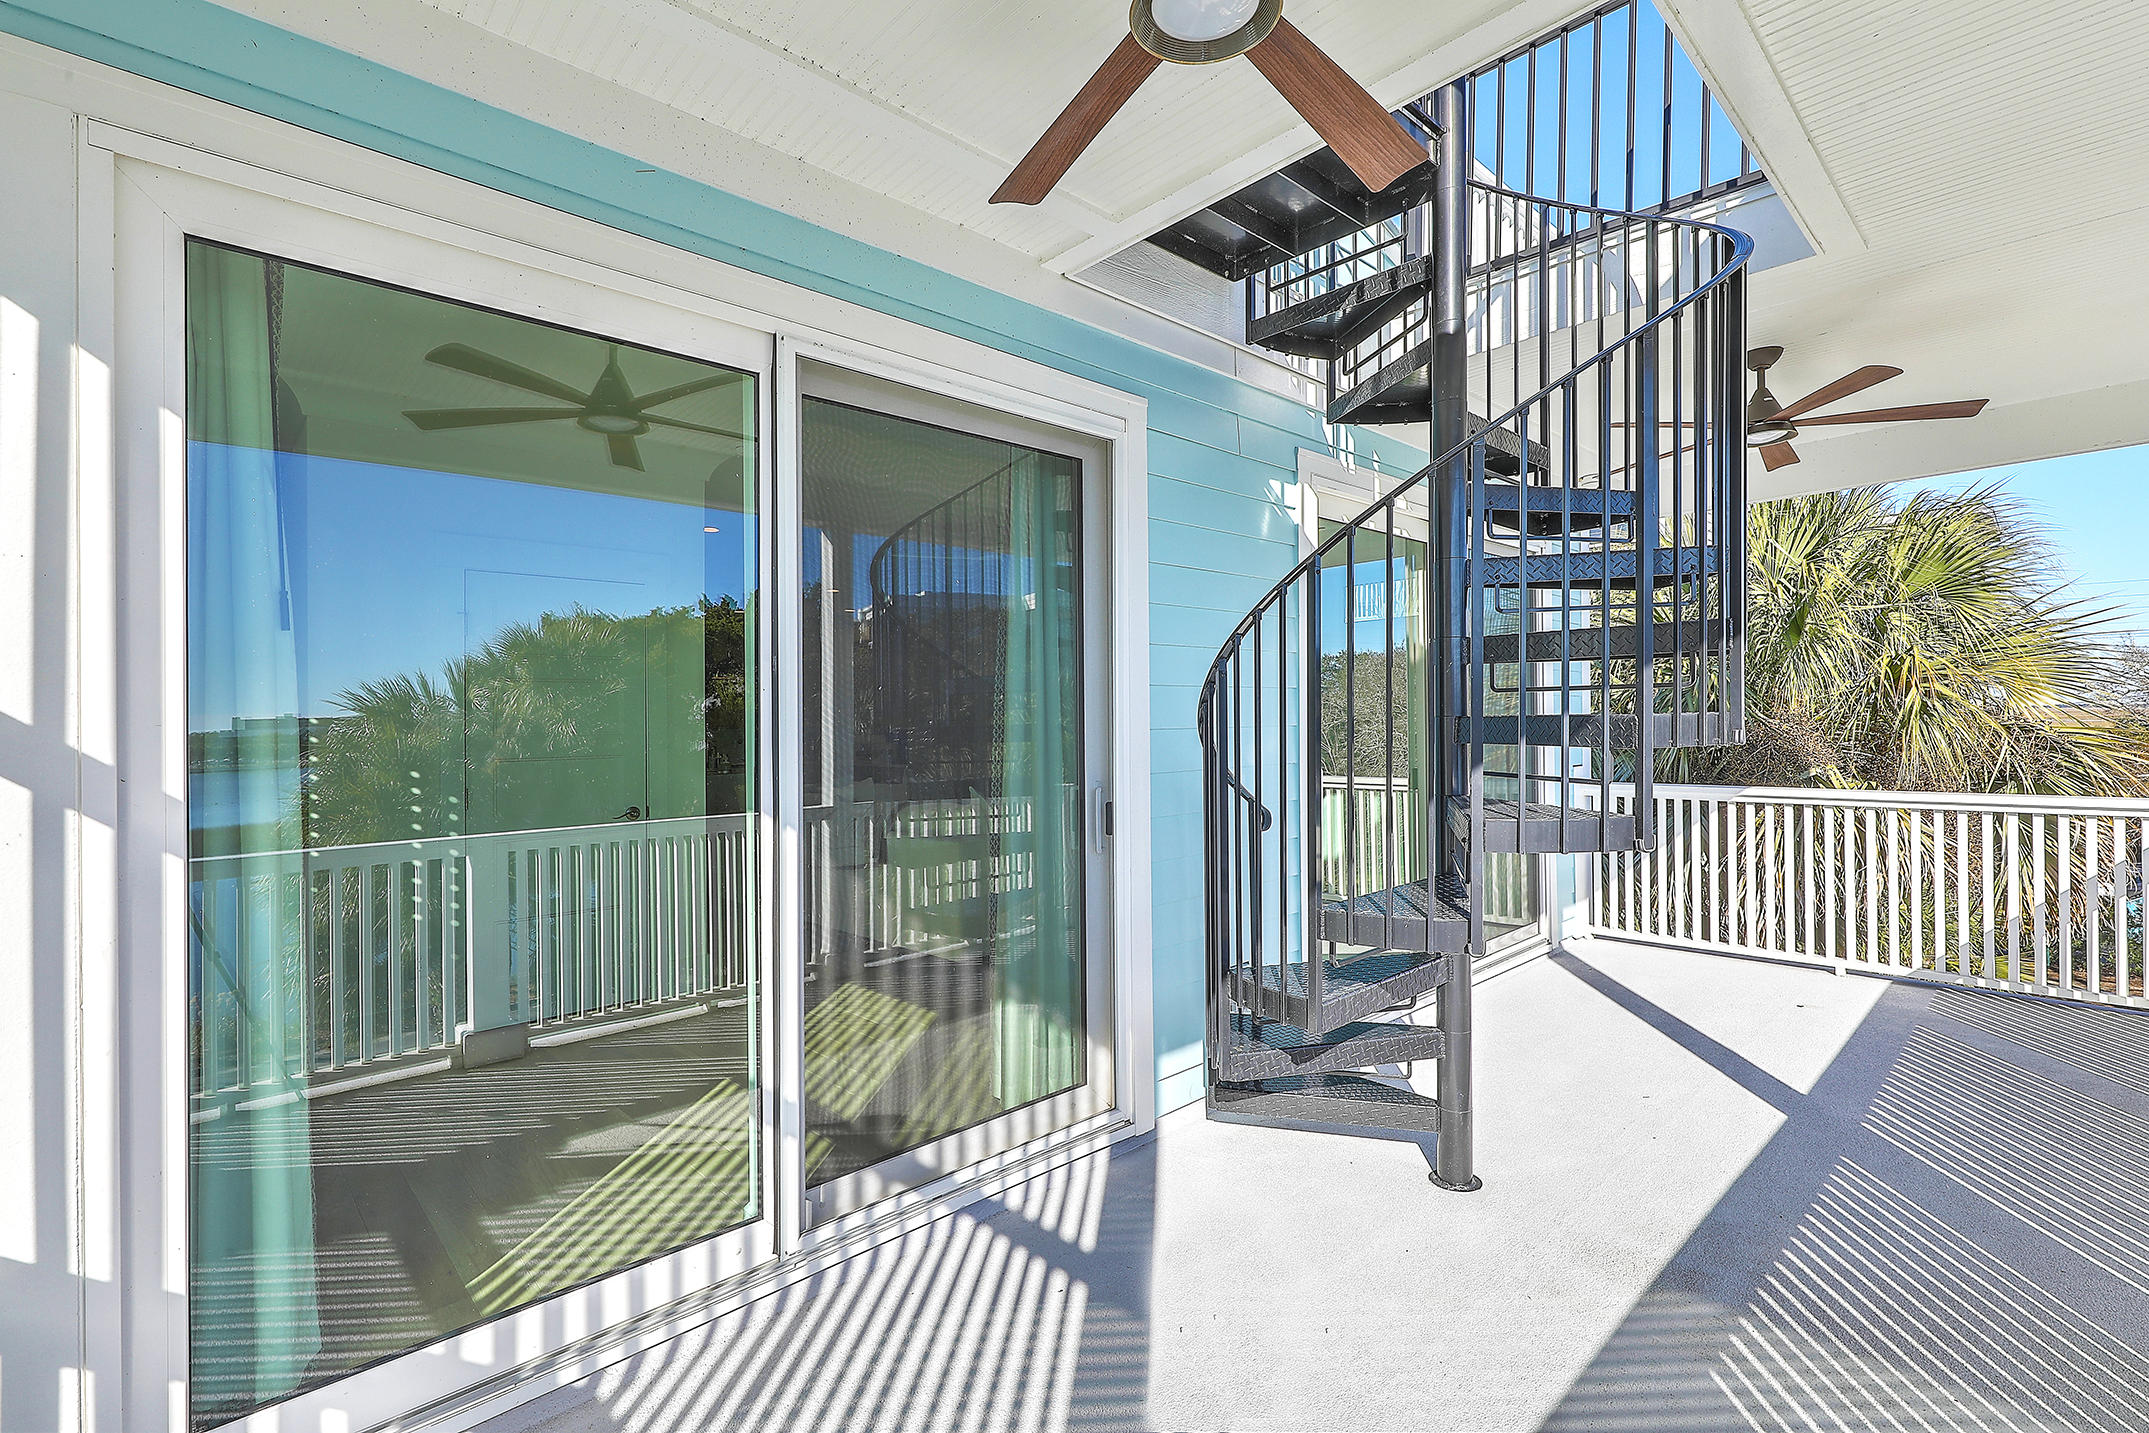 Mariners Cay Homes For Sale - 1002 Mariners Cay, Folly Beach, SC - 11